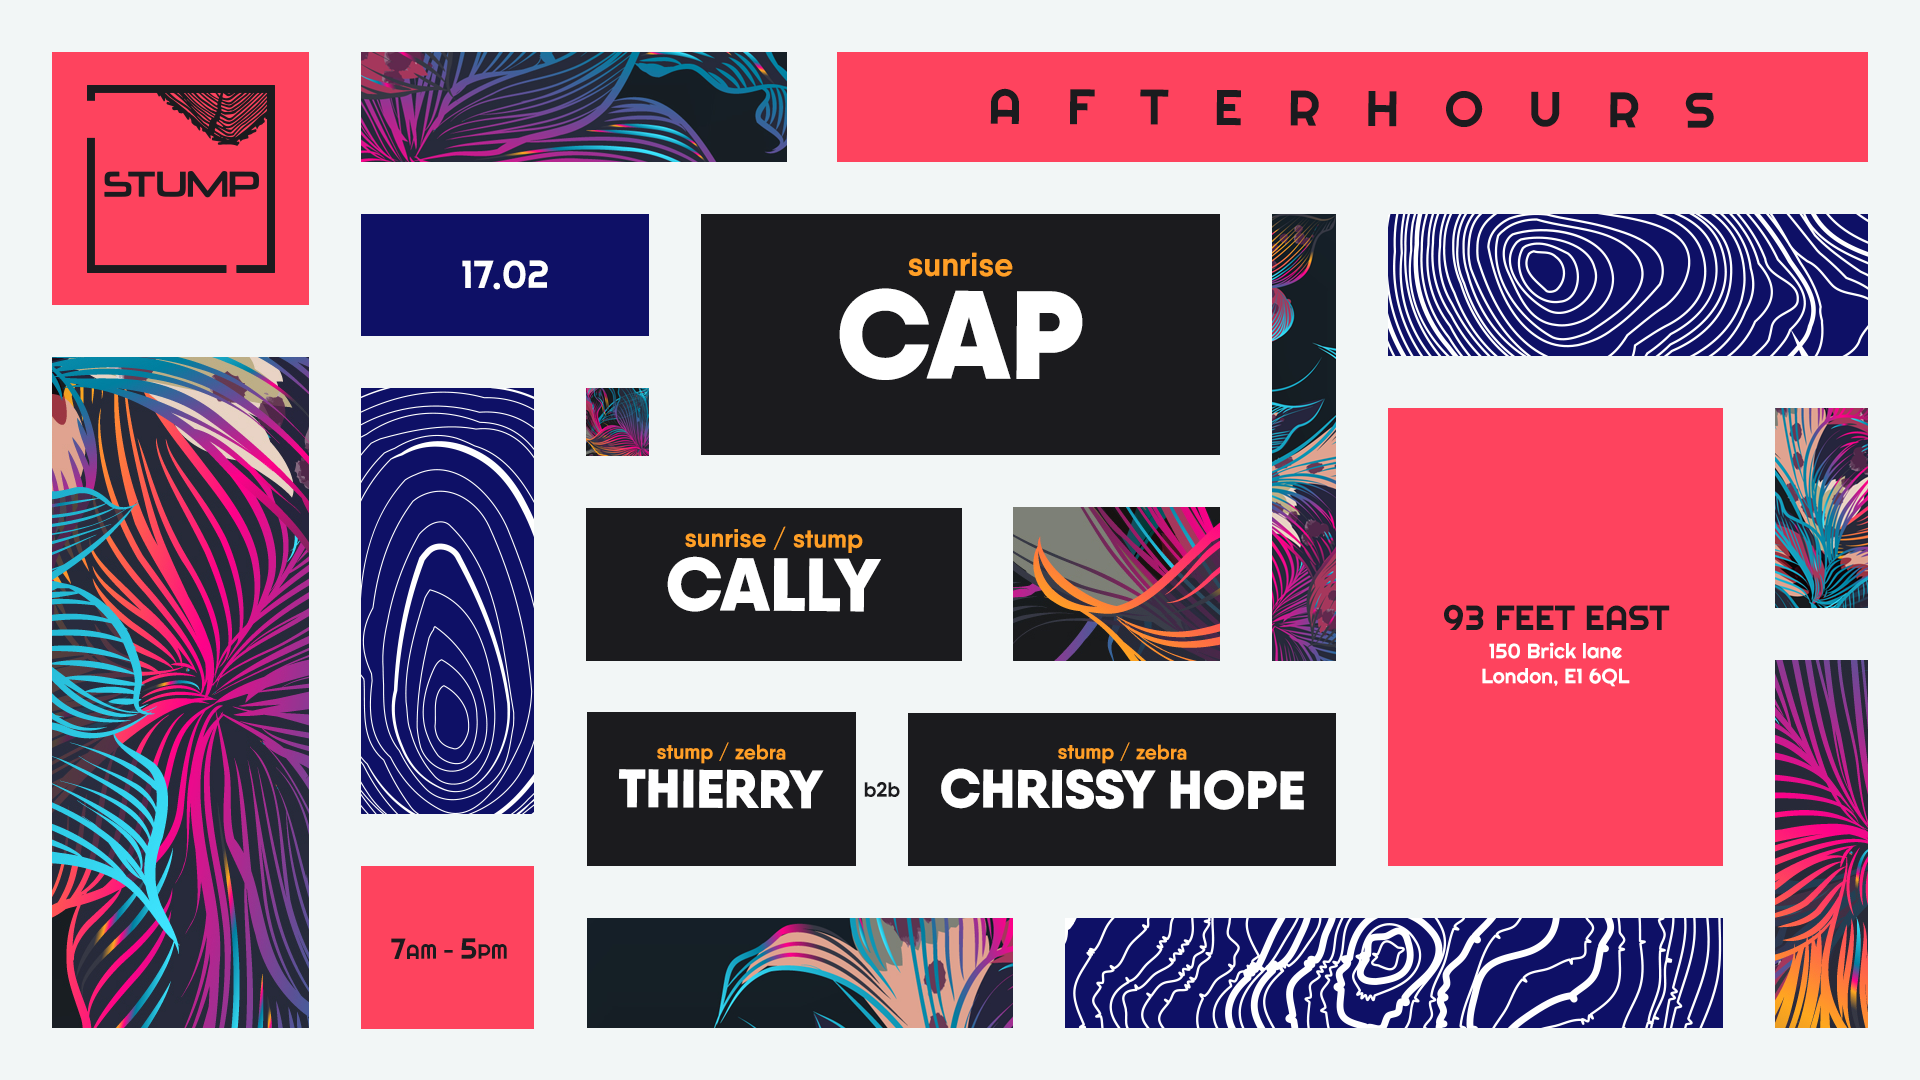 Tickets for 17-02-2019 Stump afters with Cap, Cally, Thierry b2b Chrissy Hope